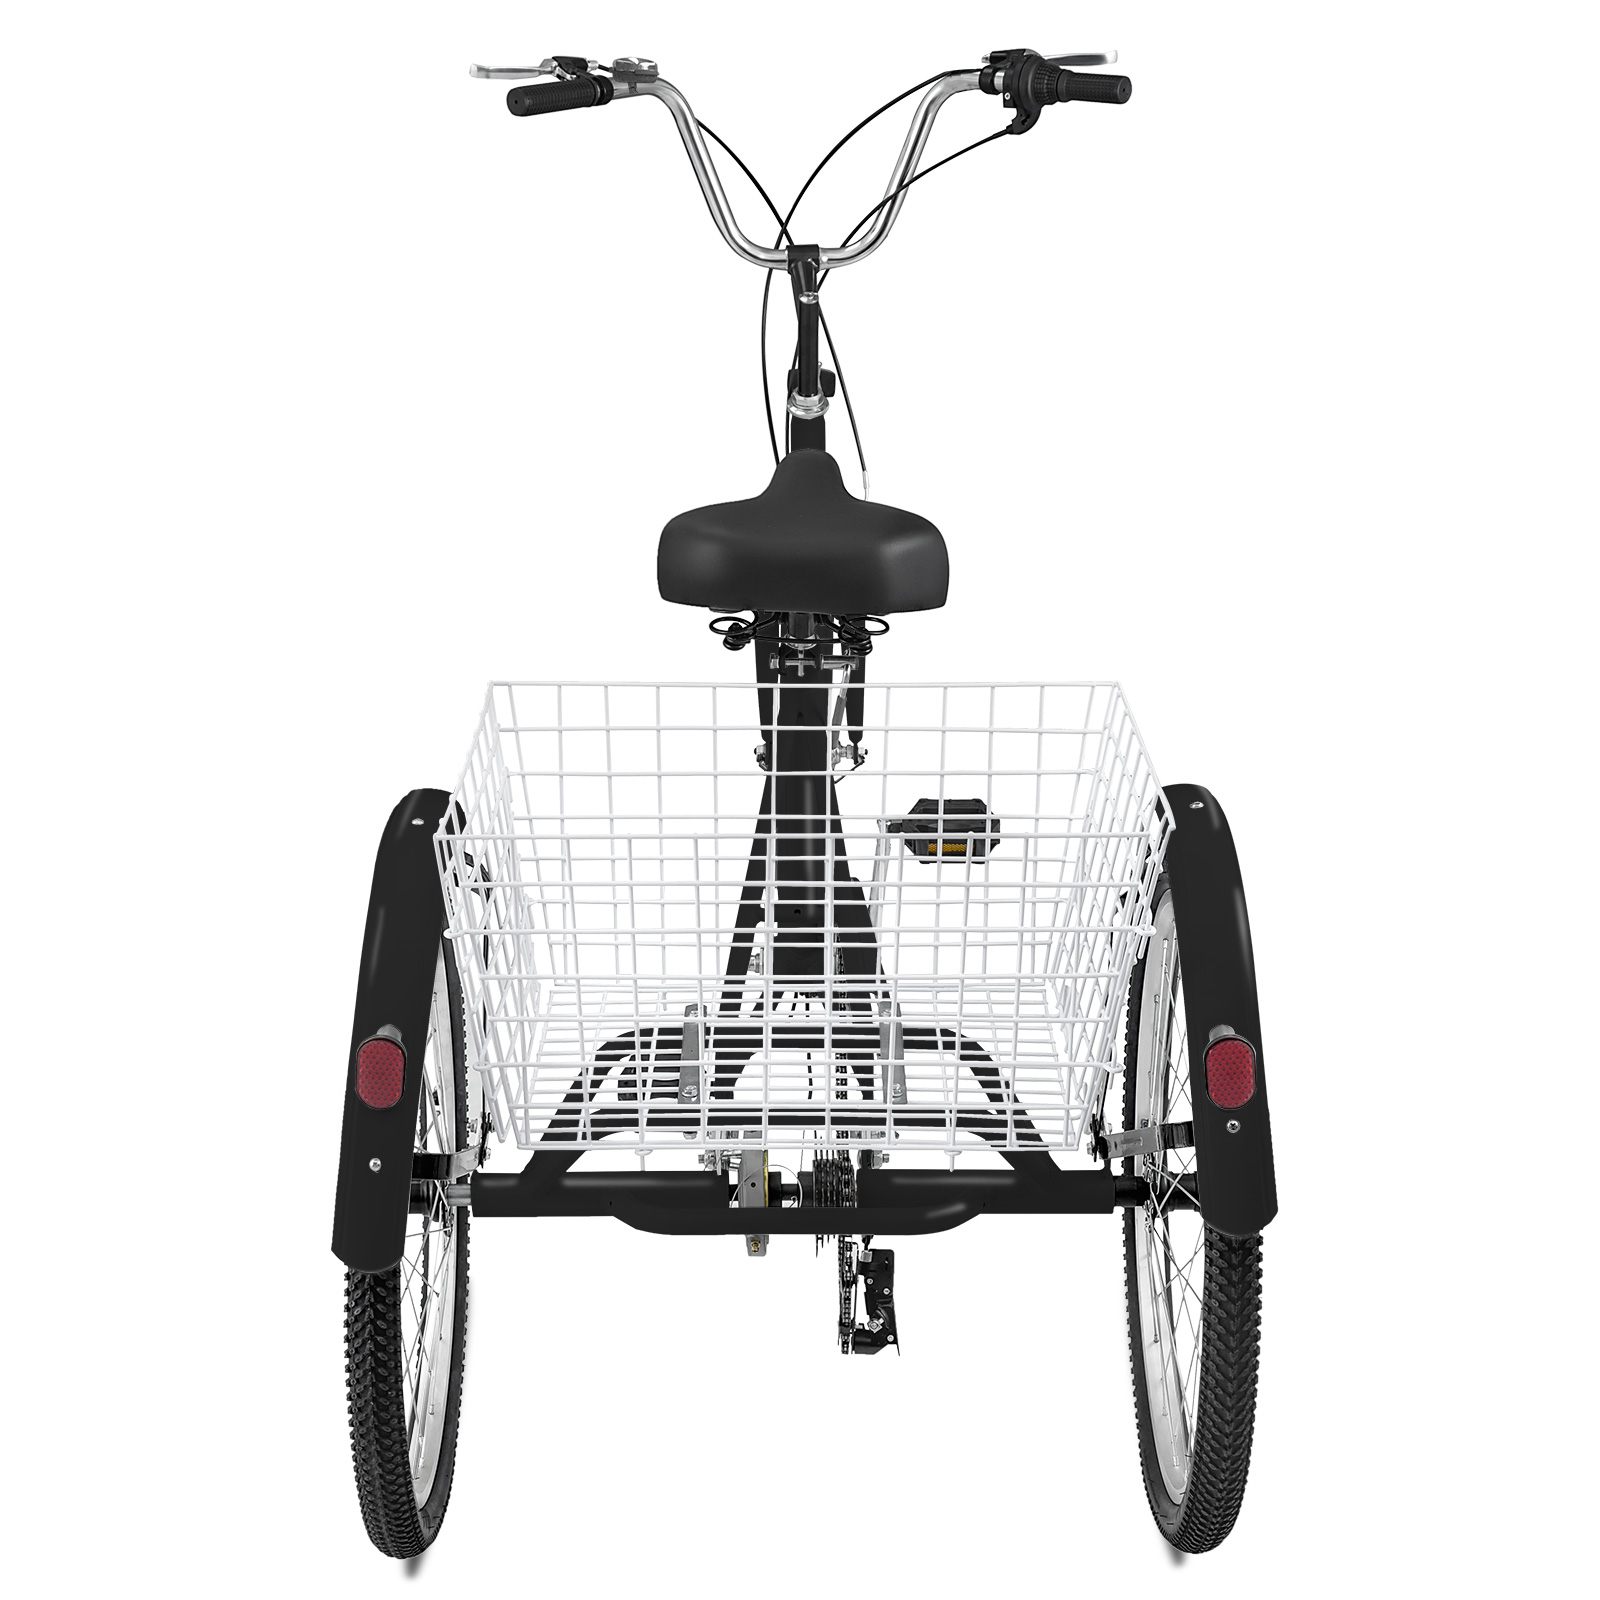 20-24-26-034-Adult-Tricycle-1-7-Speed-3-Wheel-Large-Basket-For-Shopping-Optional thumbnail 216